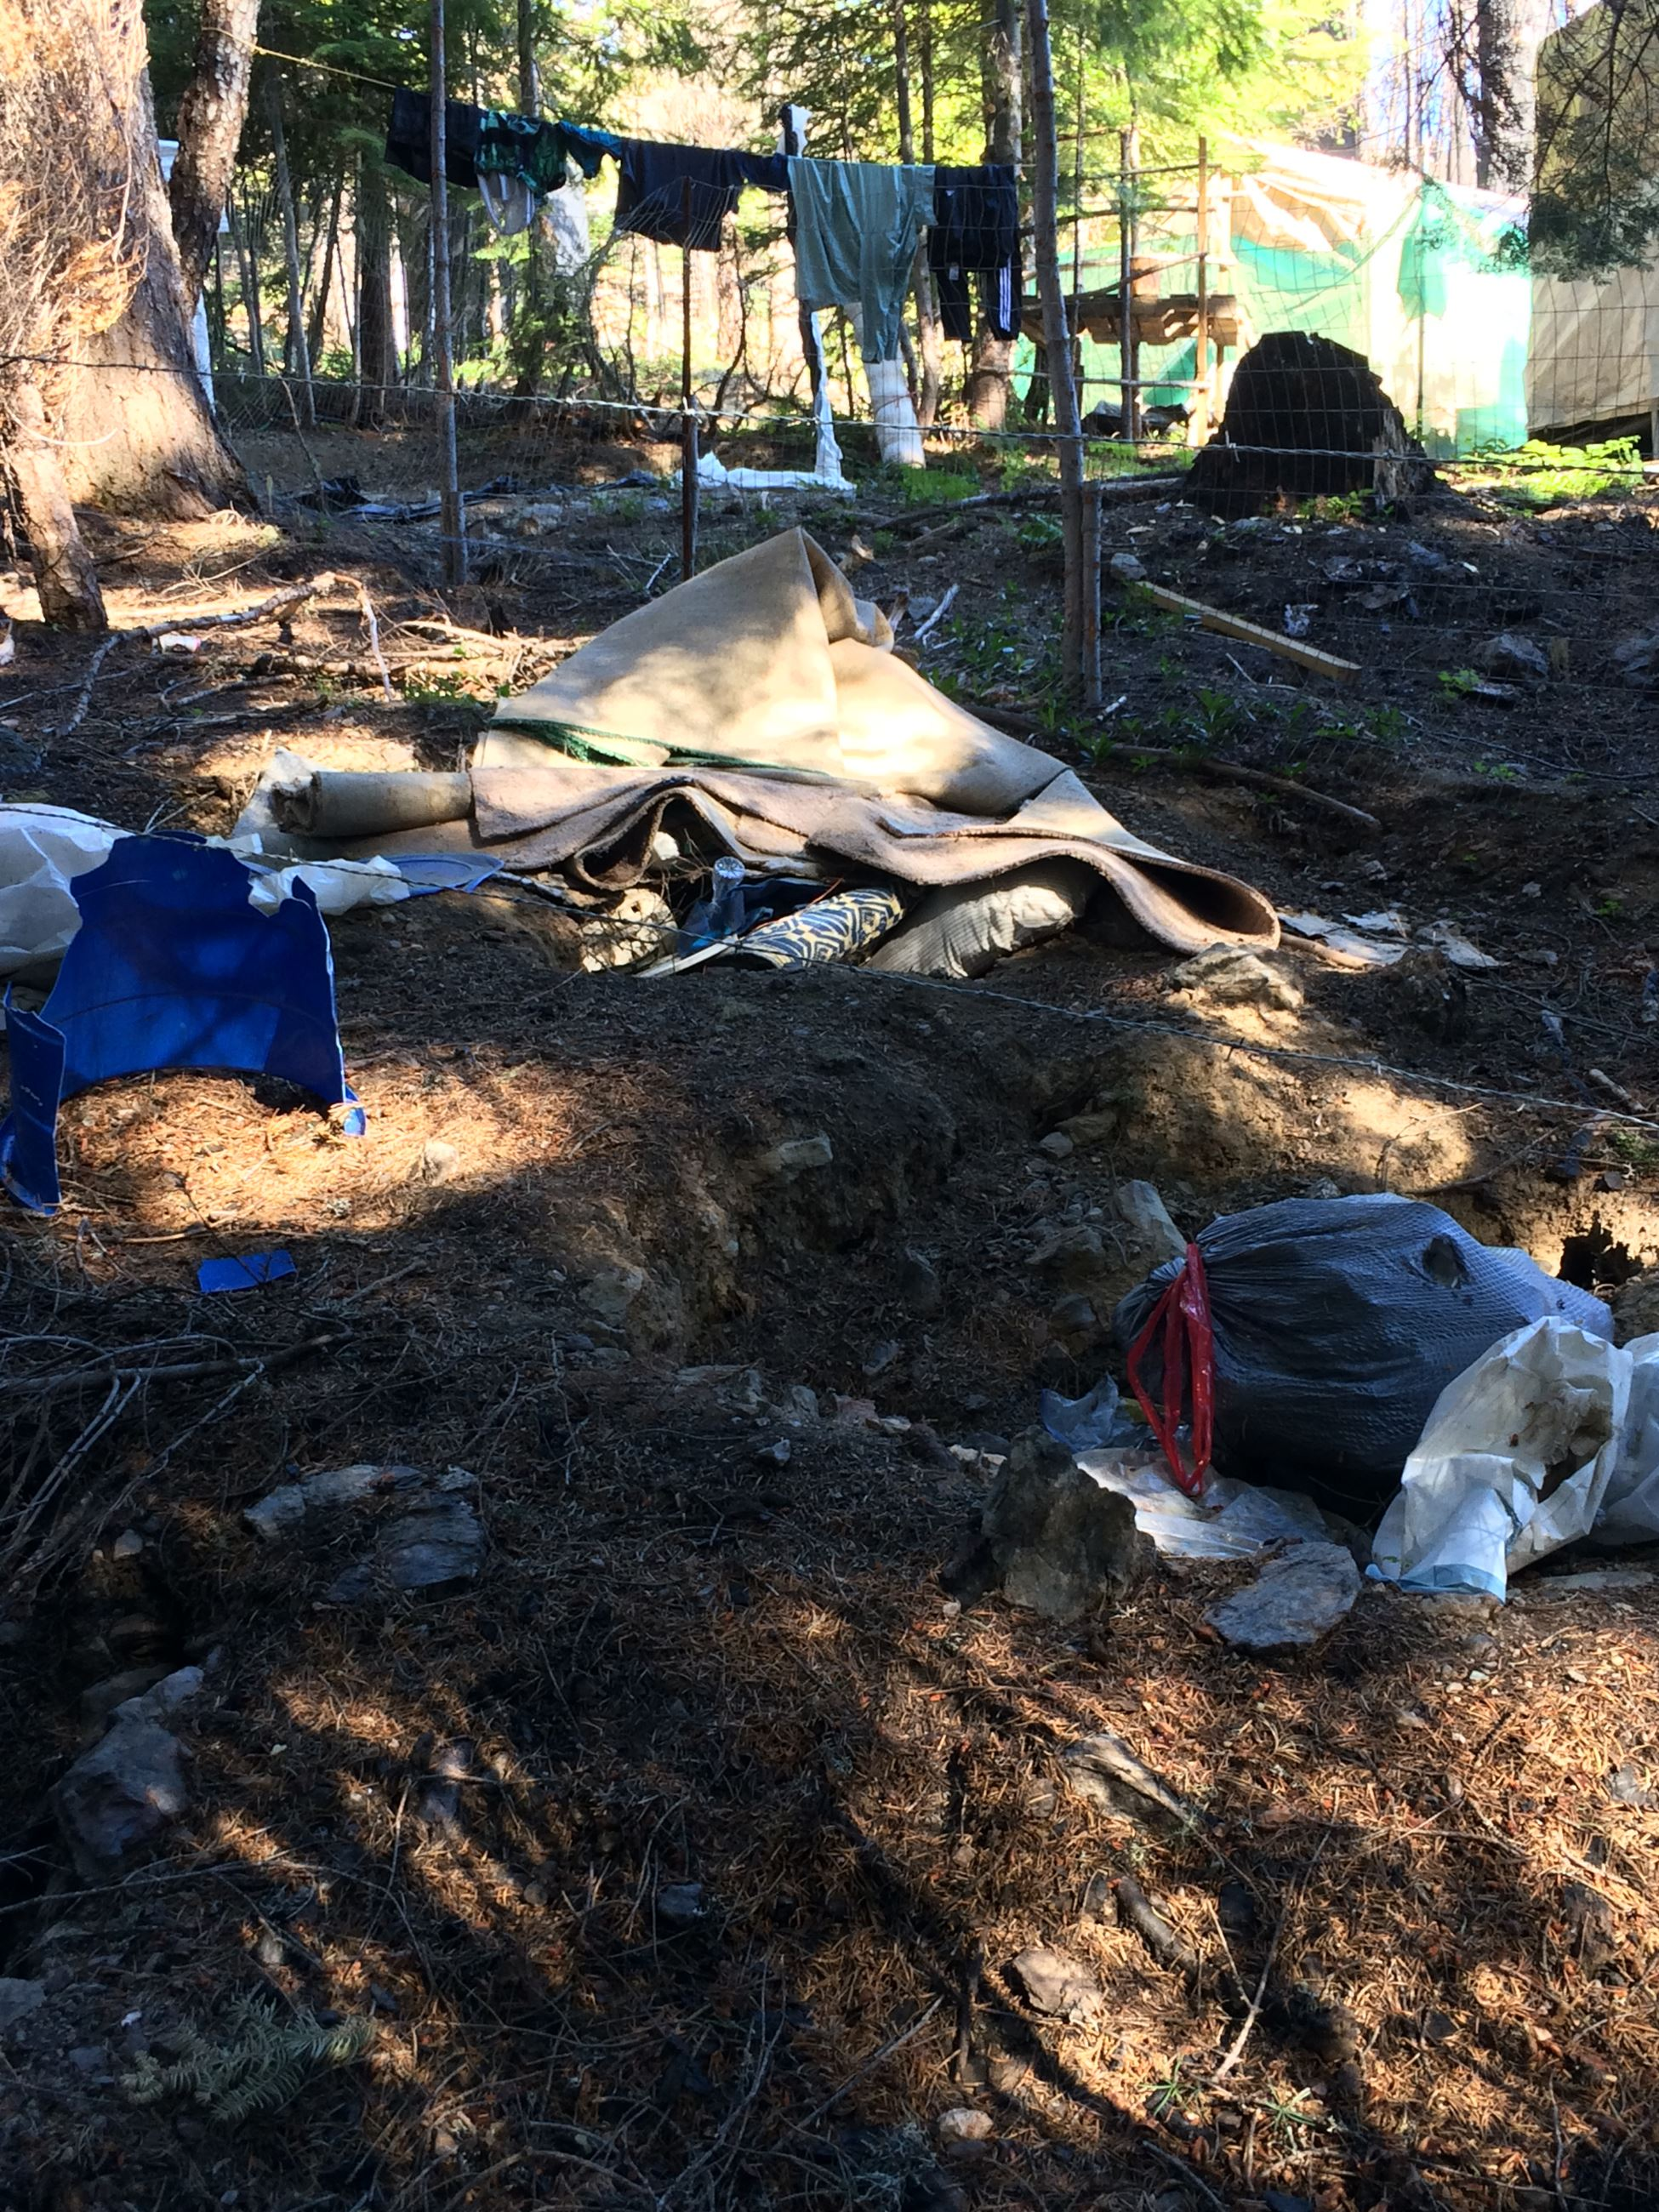 blankets, clothing and trash bags strewn on property